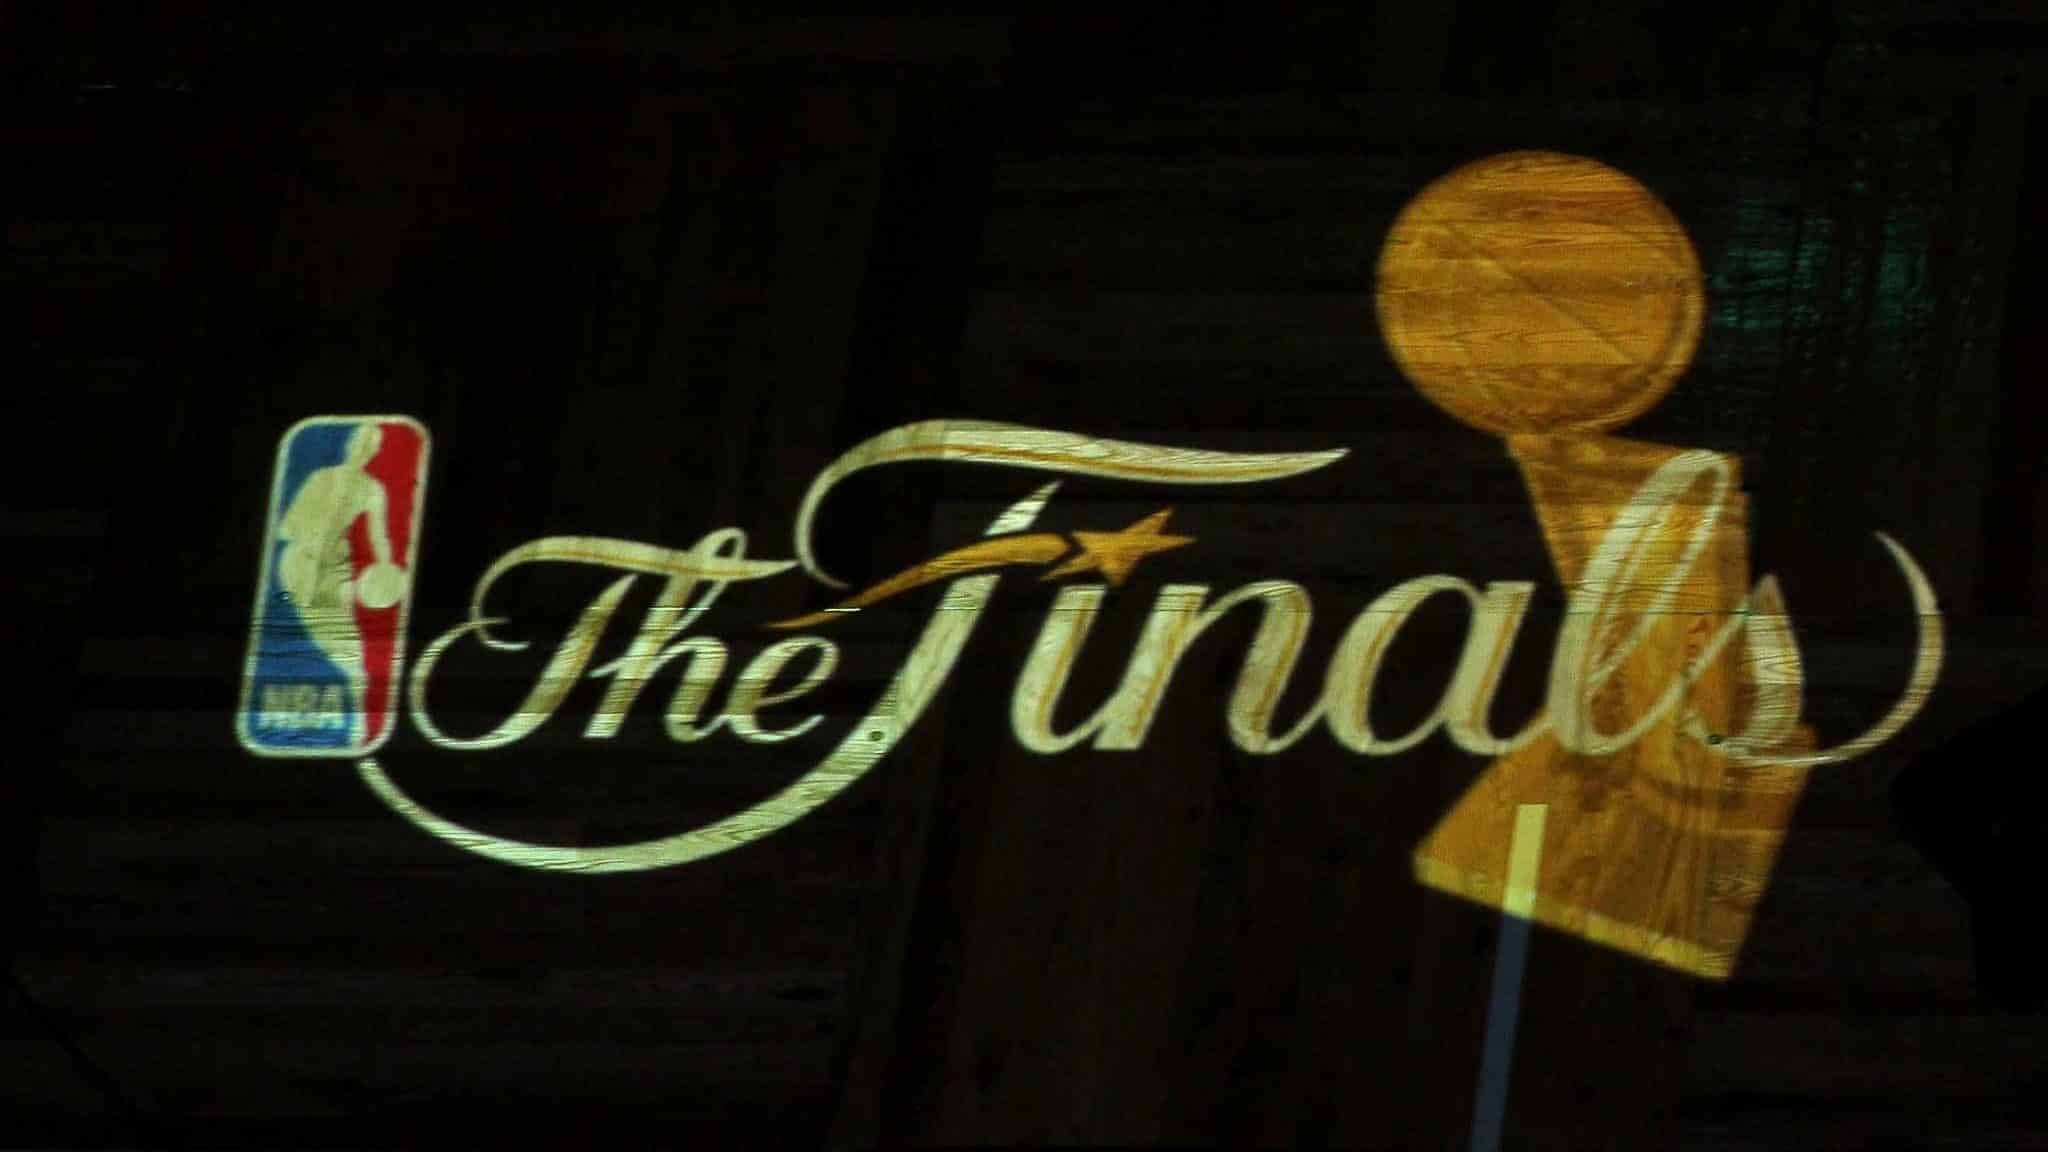 BOSTON - JUNE 10: A detail of the finals logo being projected on the court floor as the Los Angeles Lakers get set to play against the Boston Celtics during Game Four of the 2010 NBA Finals on June 10, 2010 at TD Garden in Boston, Massachusetts. NOTE TO USER: User expressly acknowledges and agrees that, by downloading and/or using this Photograph, user is consenting to the terms and conditions of the Getty Images License Agreement.